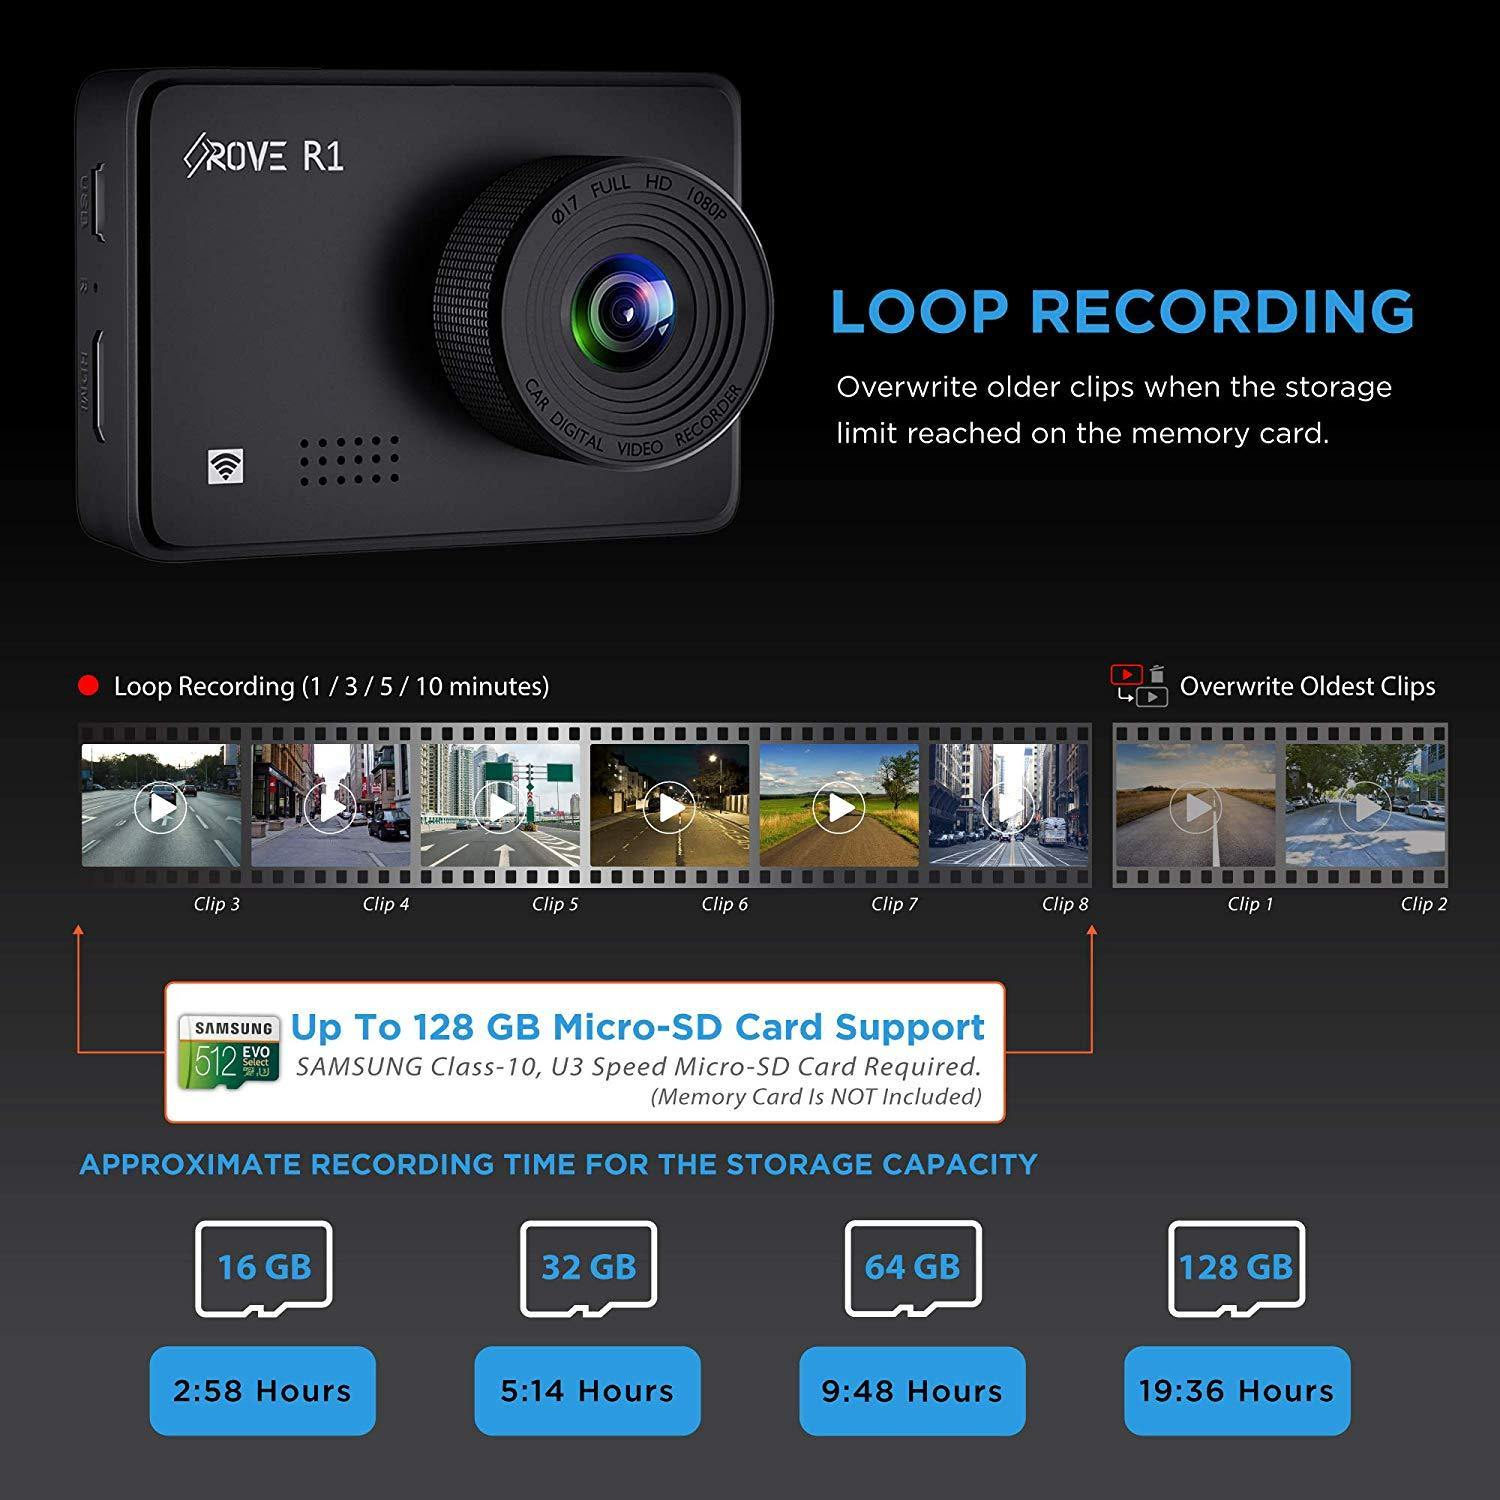 Rove R1 Smart Dash Cam 1080p With SONY Sensor, Built-In Wi-Fi, Optional GPS